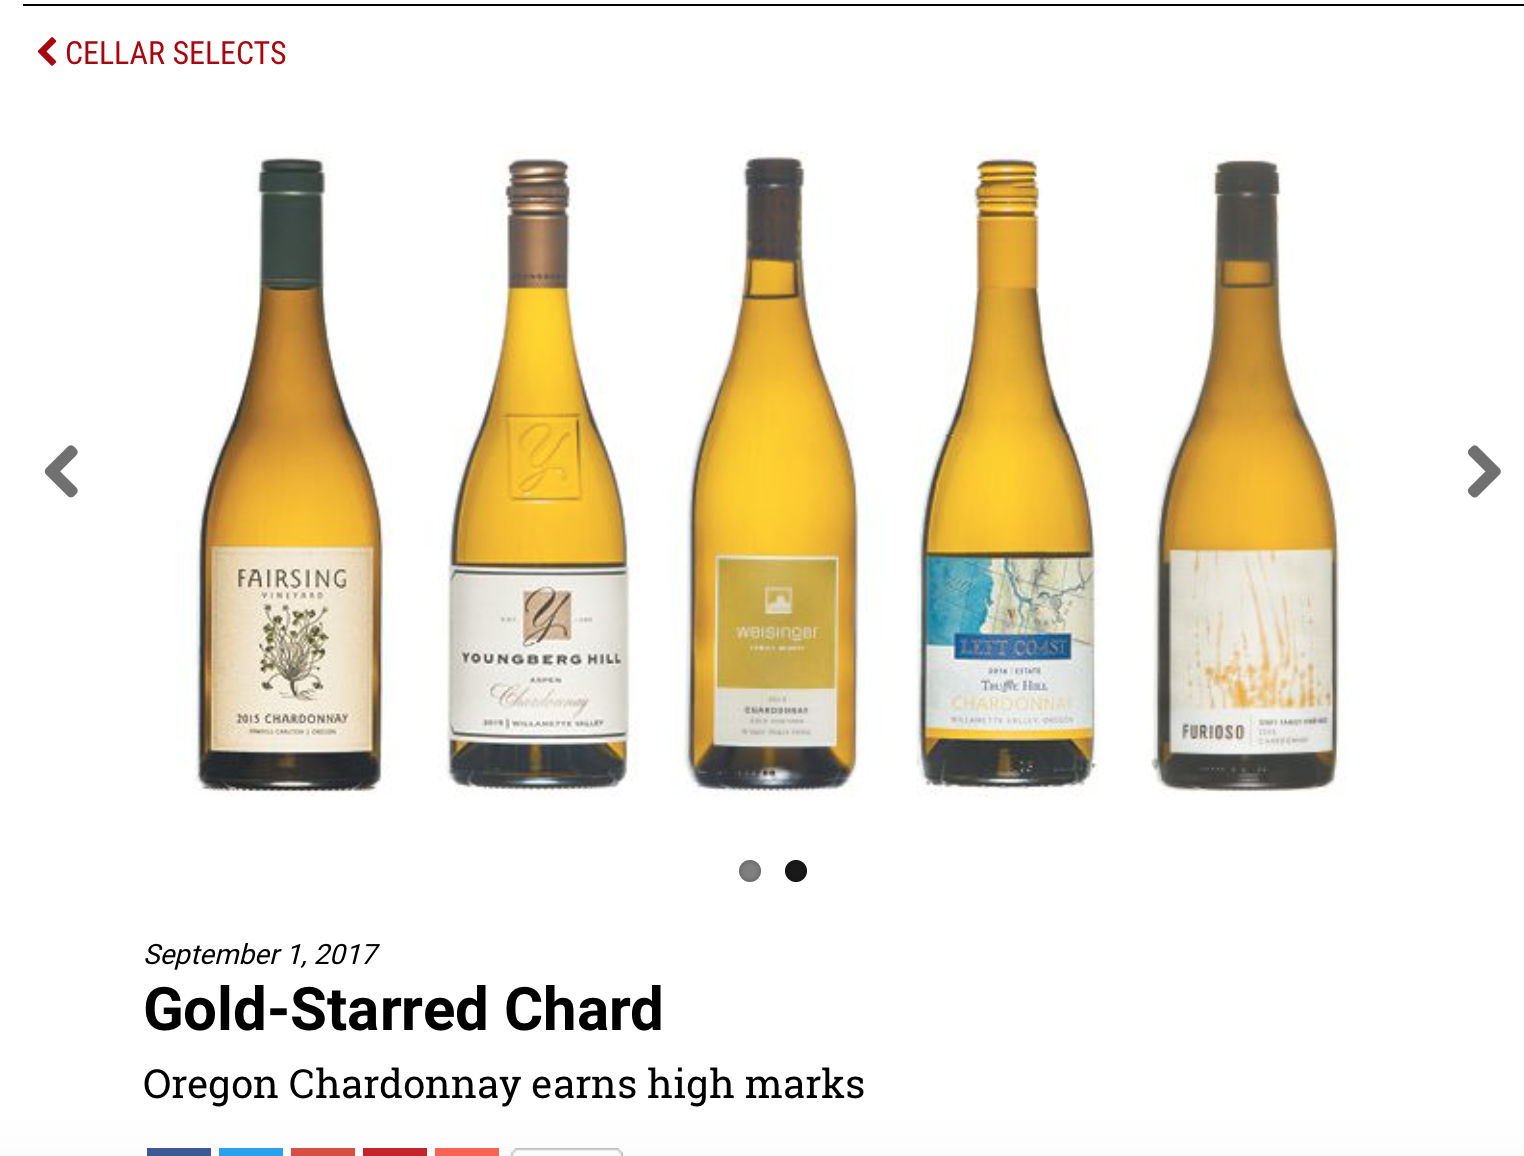 Fairsing Vineyard's 2015 Chardonnay is honored by the Oregon